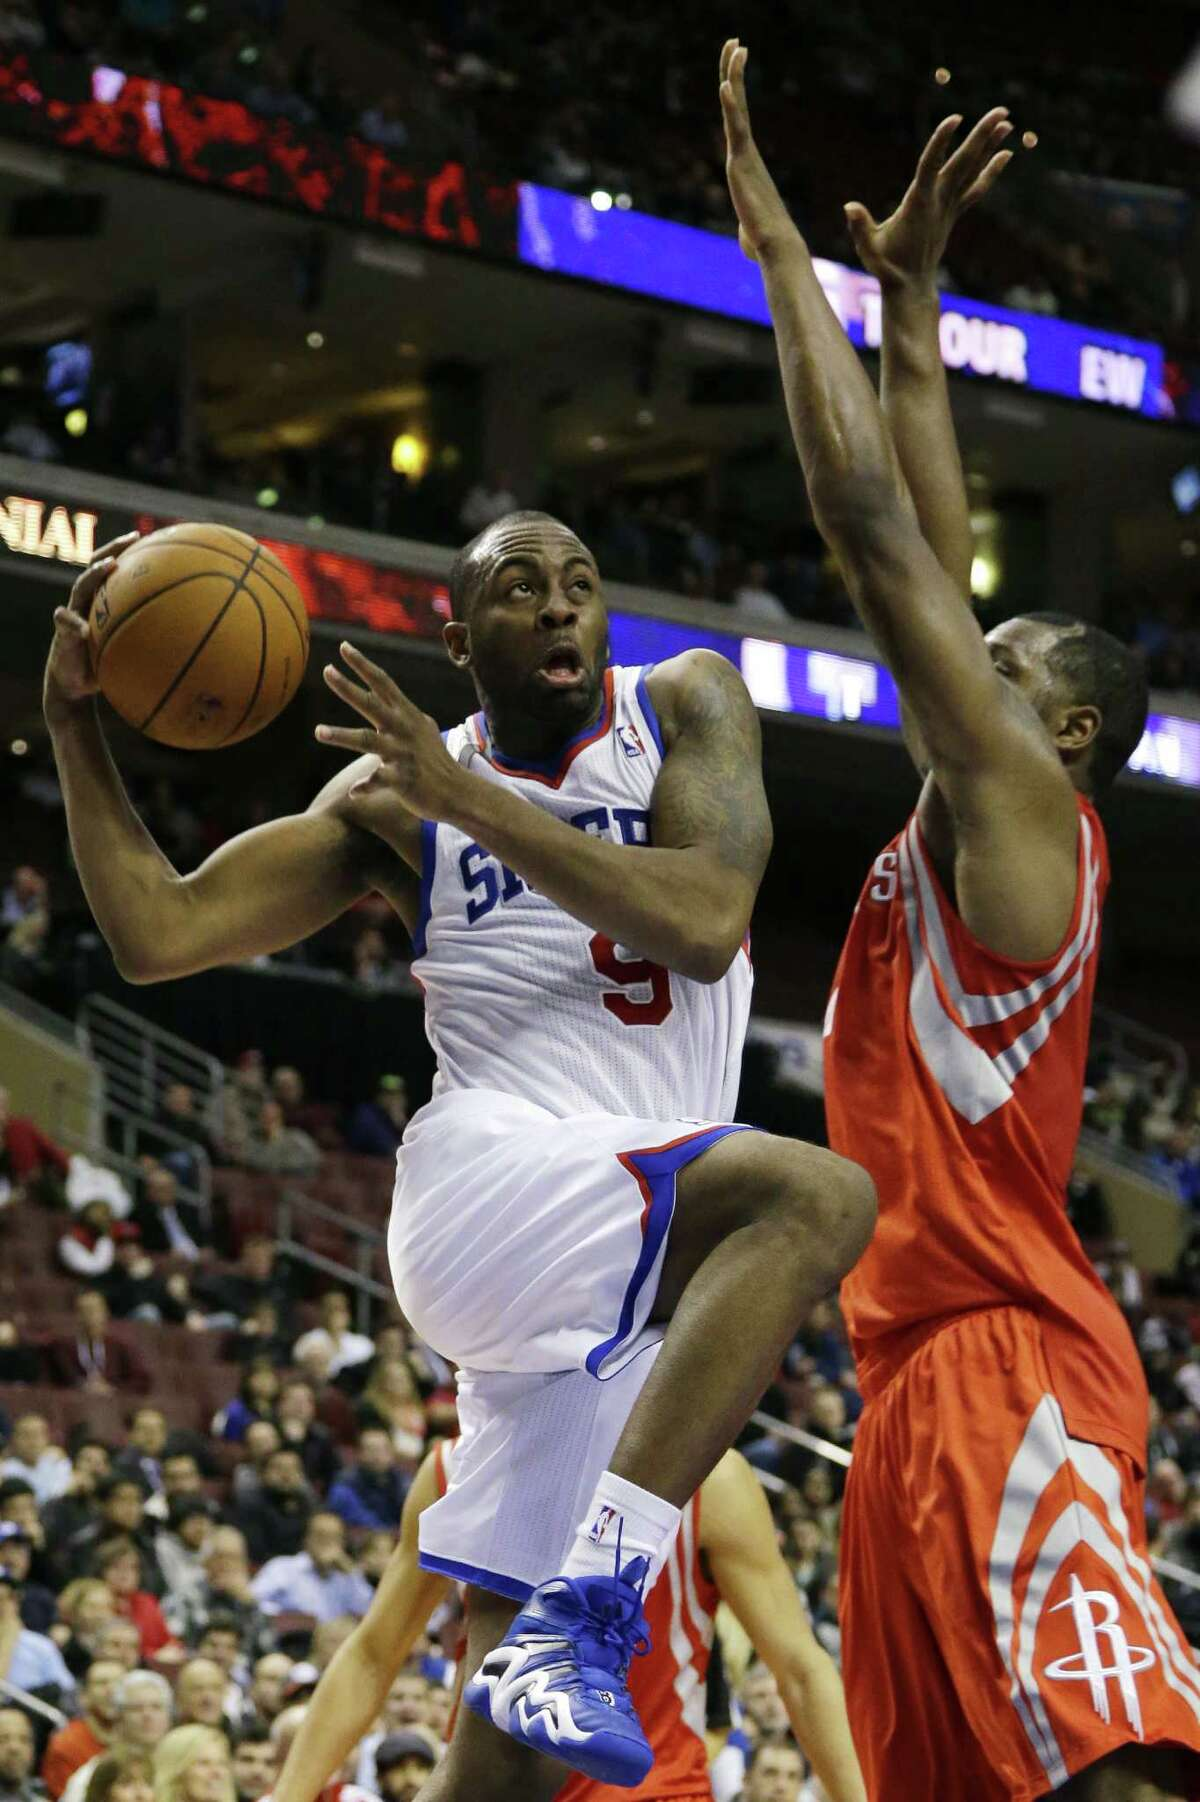 James Anderson, guard-forward with 76ers, averaging 9.9 points, 3.9 rebounds, 1.7 assists in 2014.